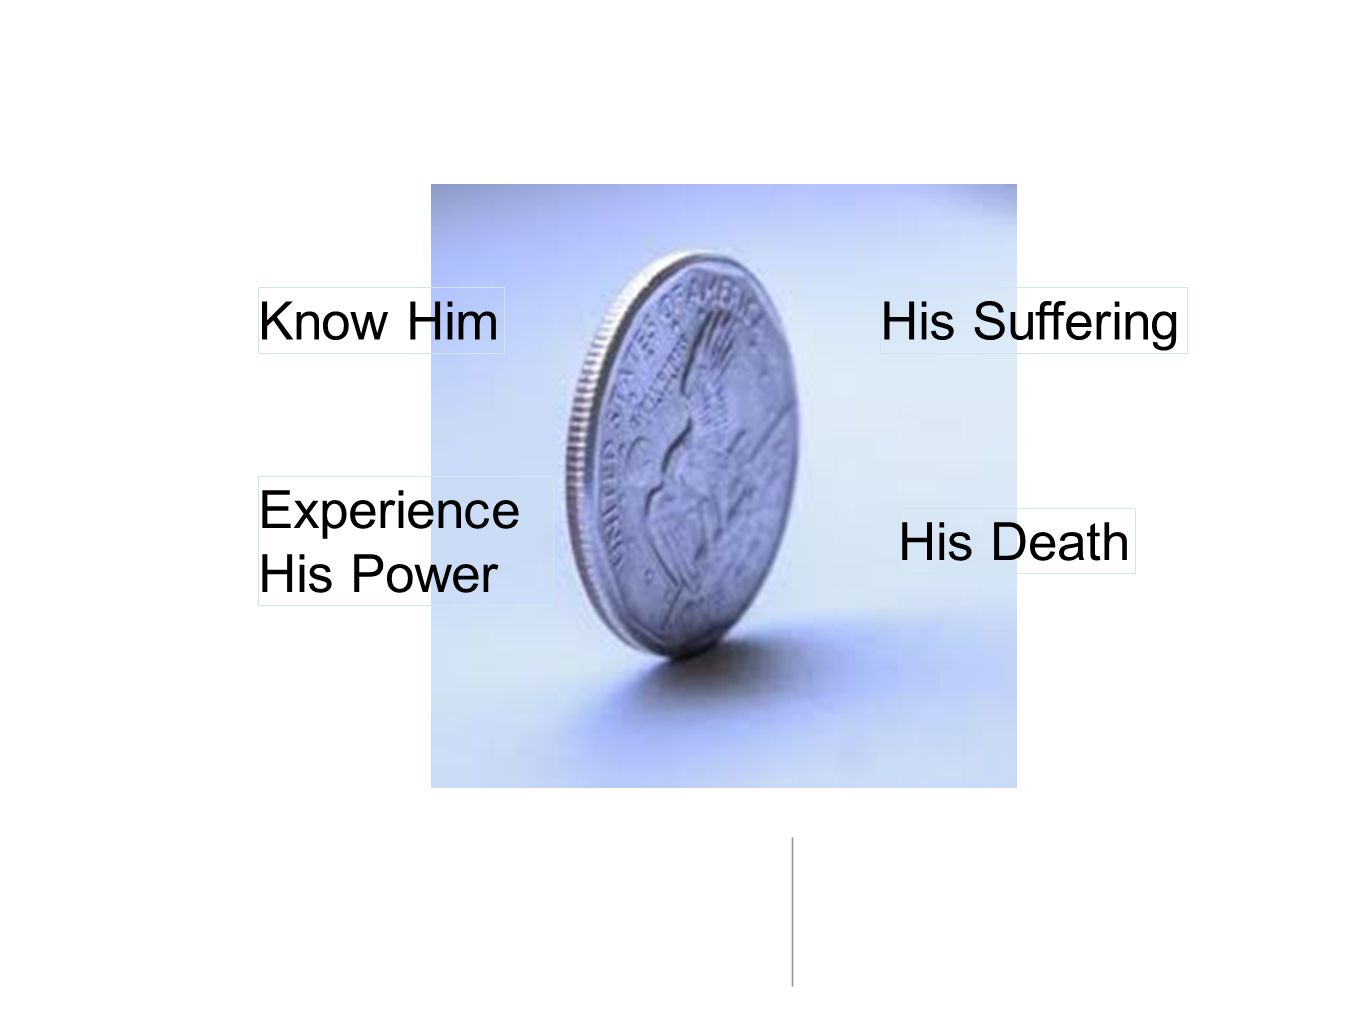 Know Him Experience His Power His Suffering His Death